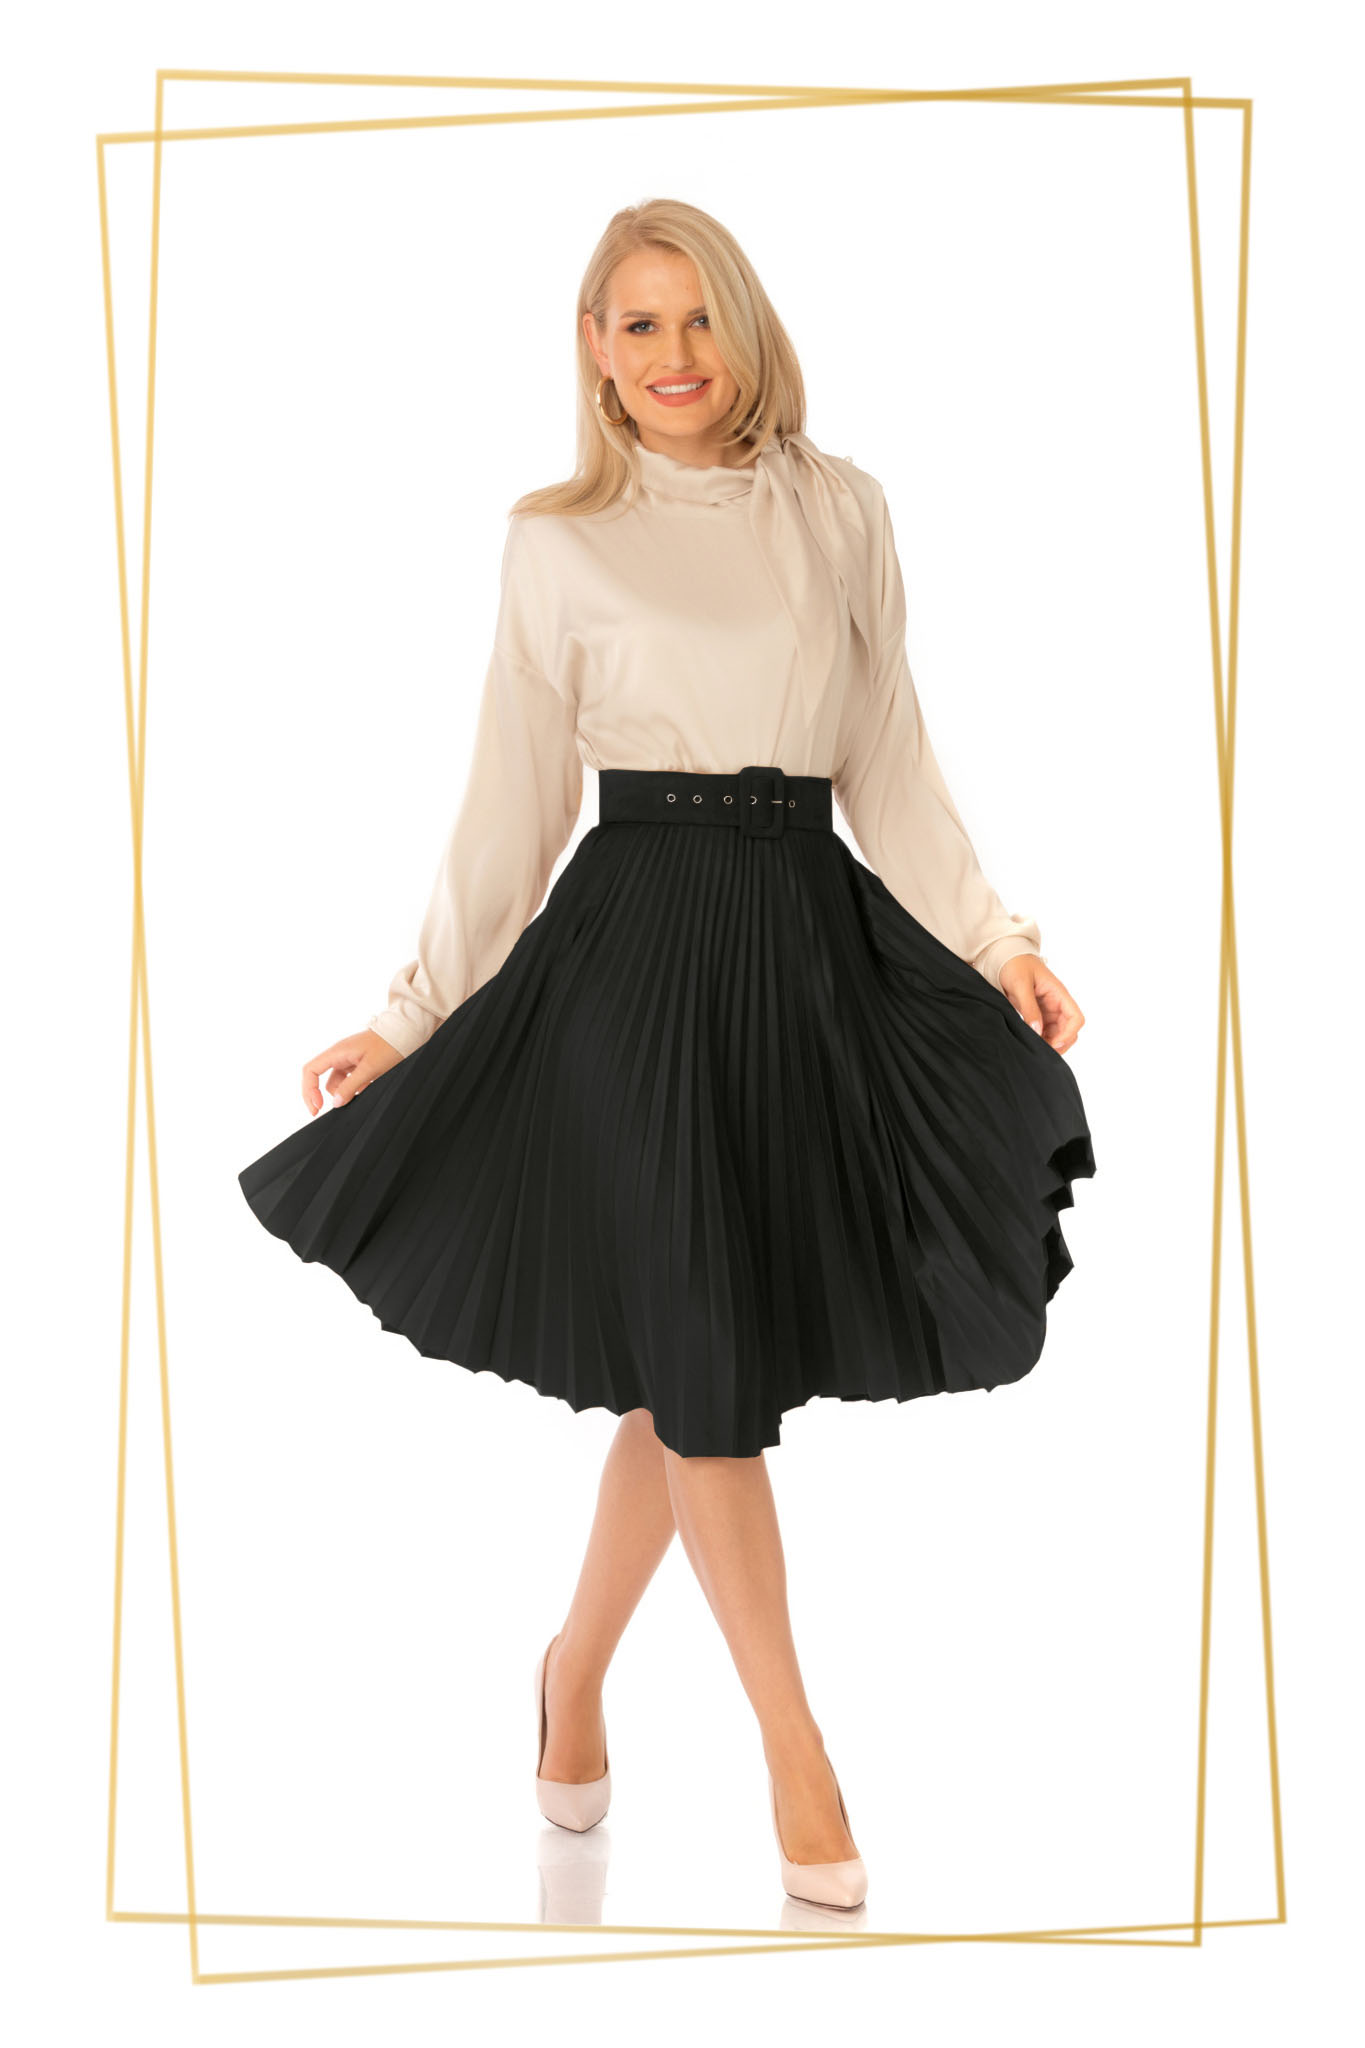 Black skirt elegant cloche high waisted folded up accessorized with belt